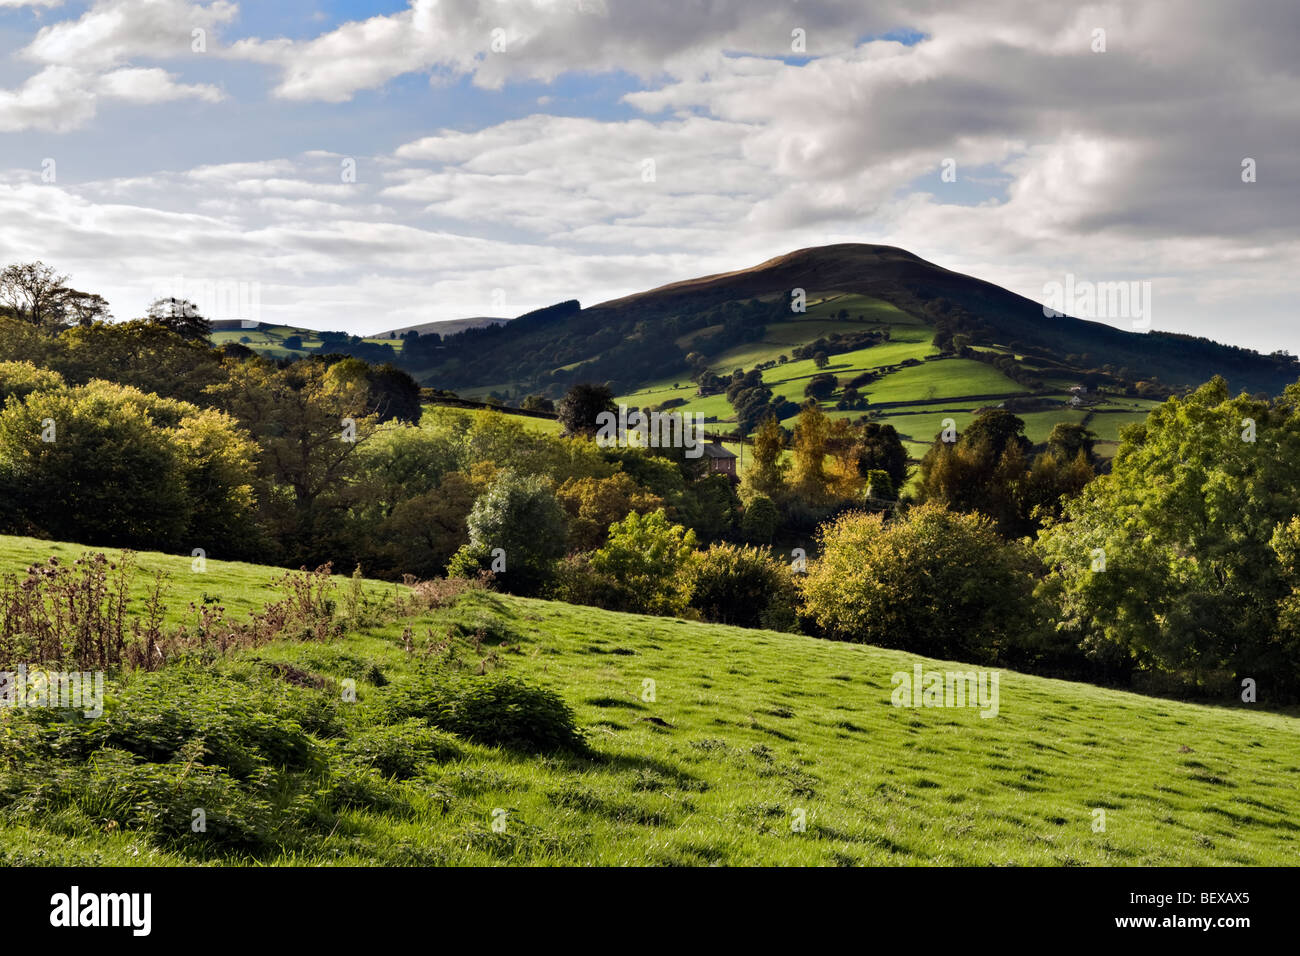 Picture over the Usk valley taken from Llangynidr moors on the B4560 Brecon Beacons national Park, Mid Wales - Stock Image